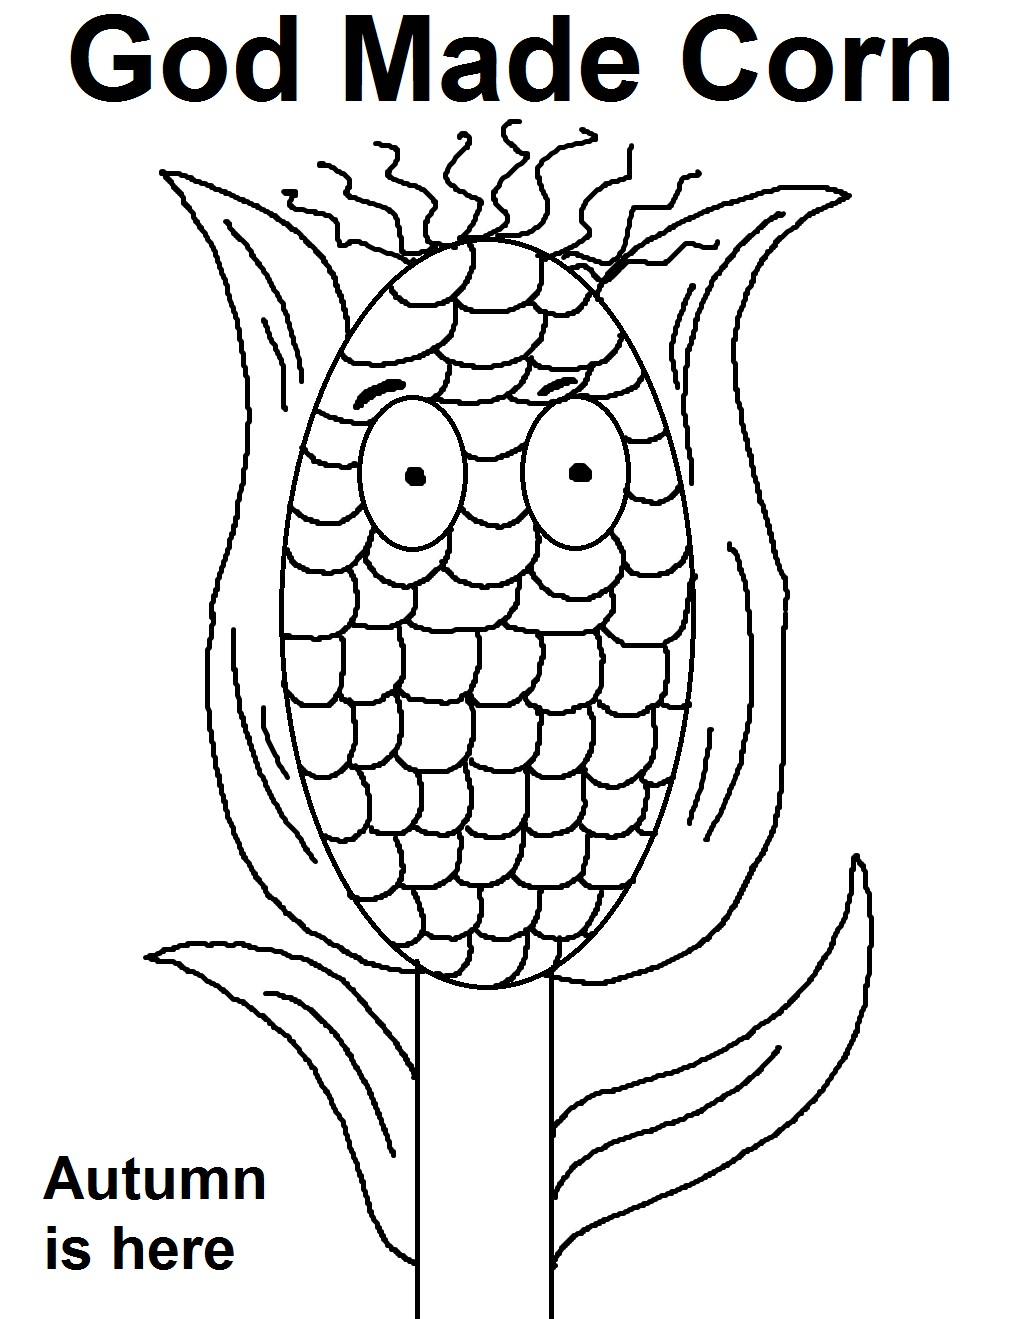 Coloring Pages God Made Me Special Coloring Page corn sunday school lesson god made coloring page